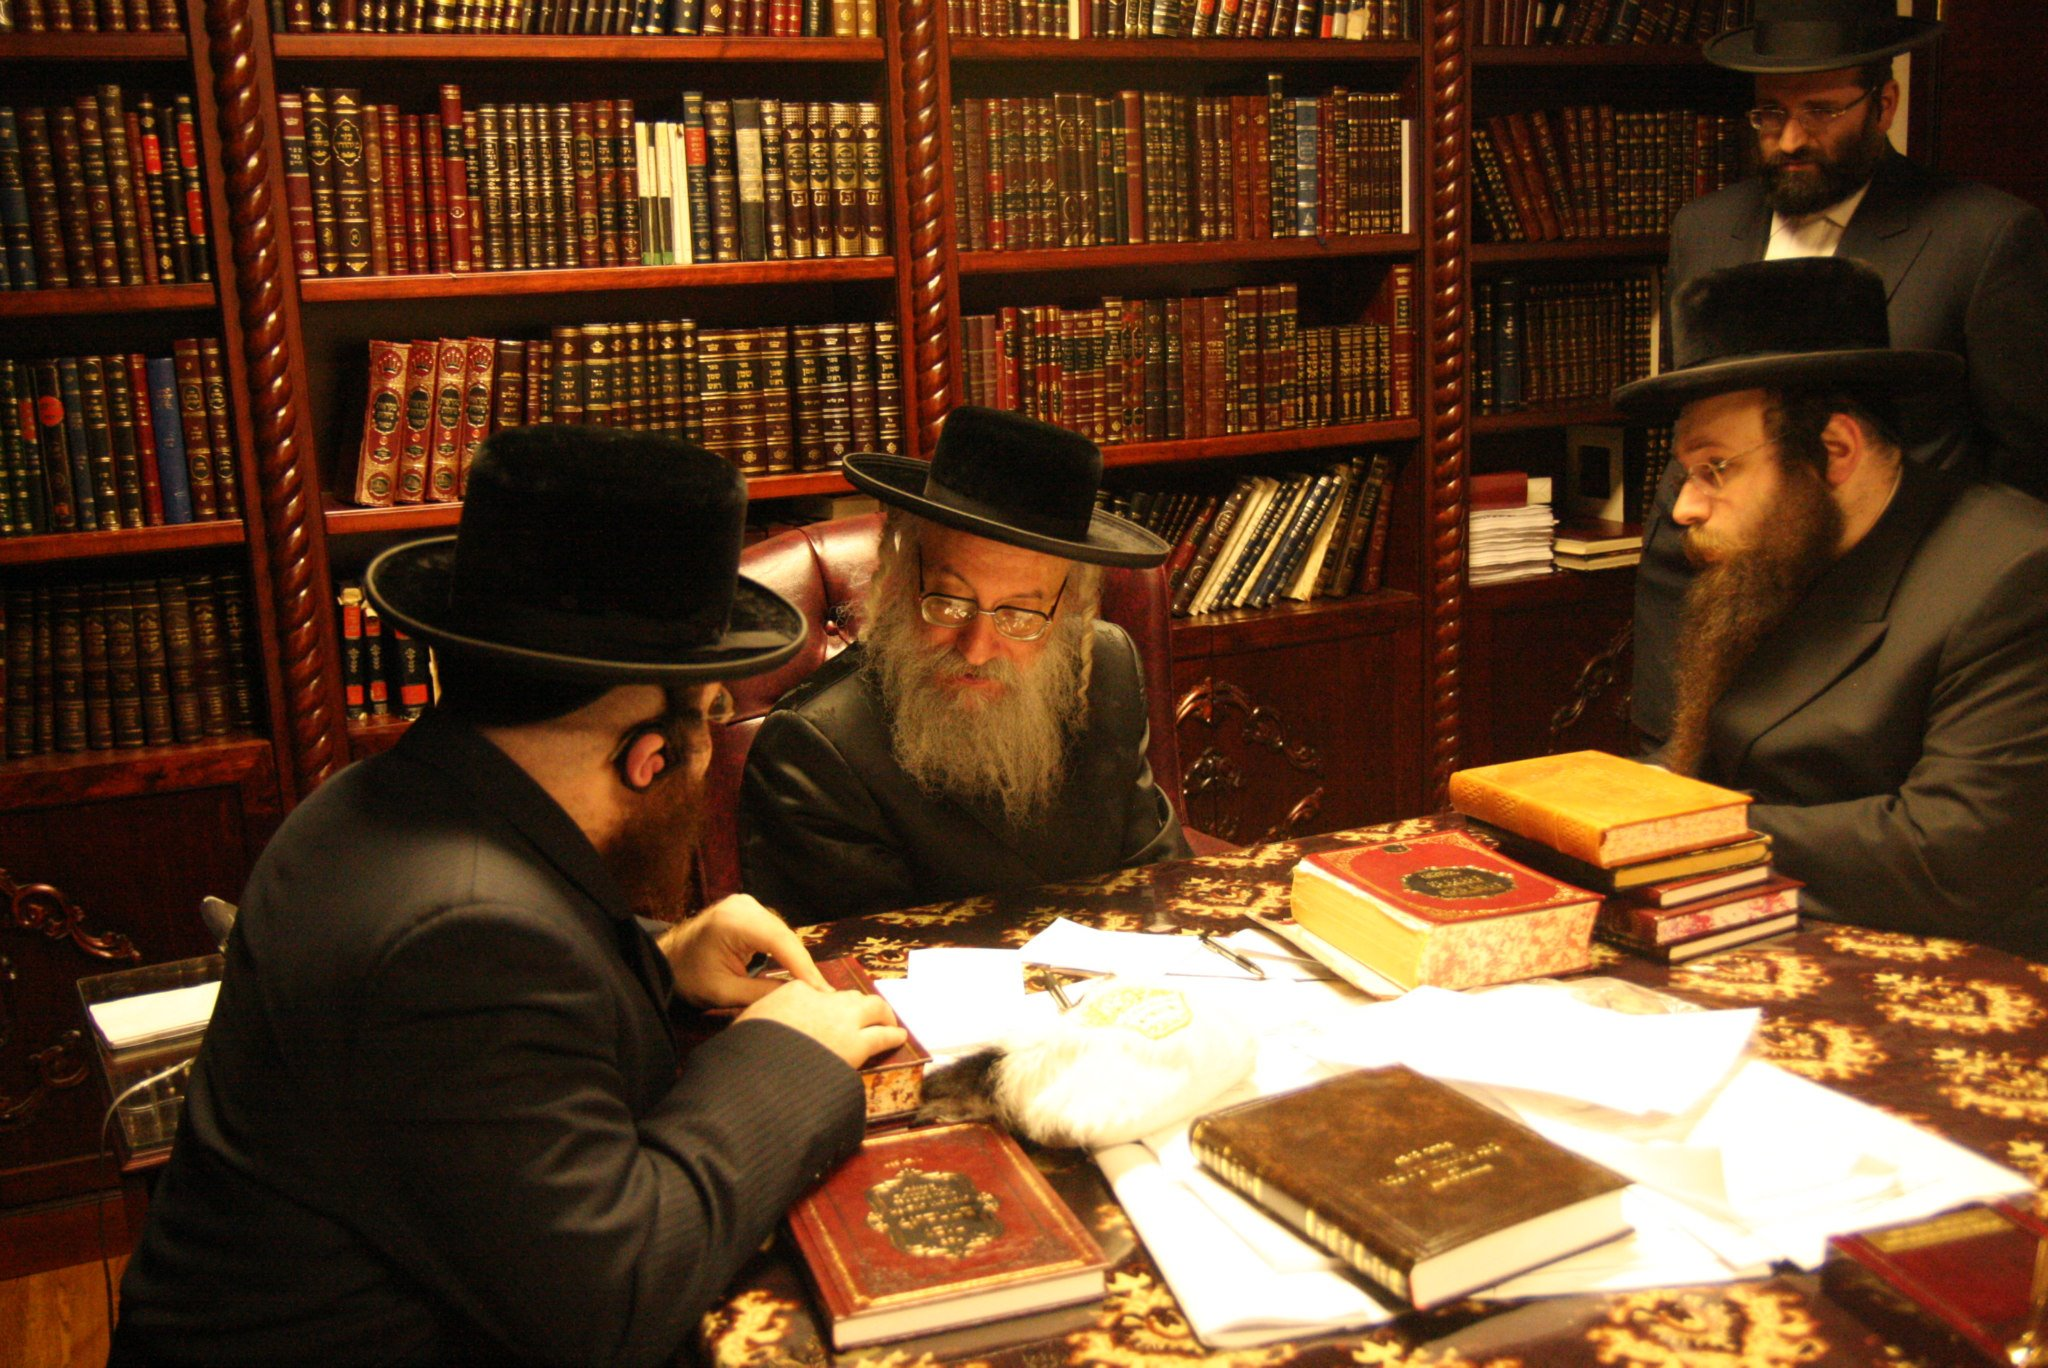 Masbia_Supporter__Vien_Rebbe__Rabbi_Asher_Anshel_Katz_Donating_to_Feed_the_Needy_2.jpg